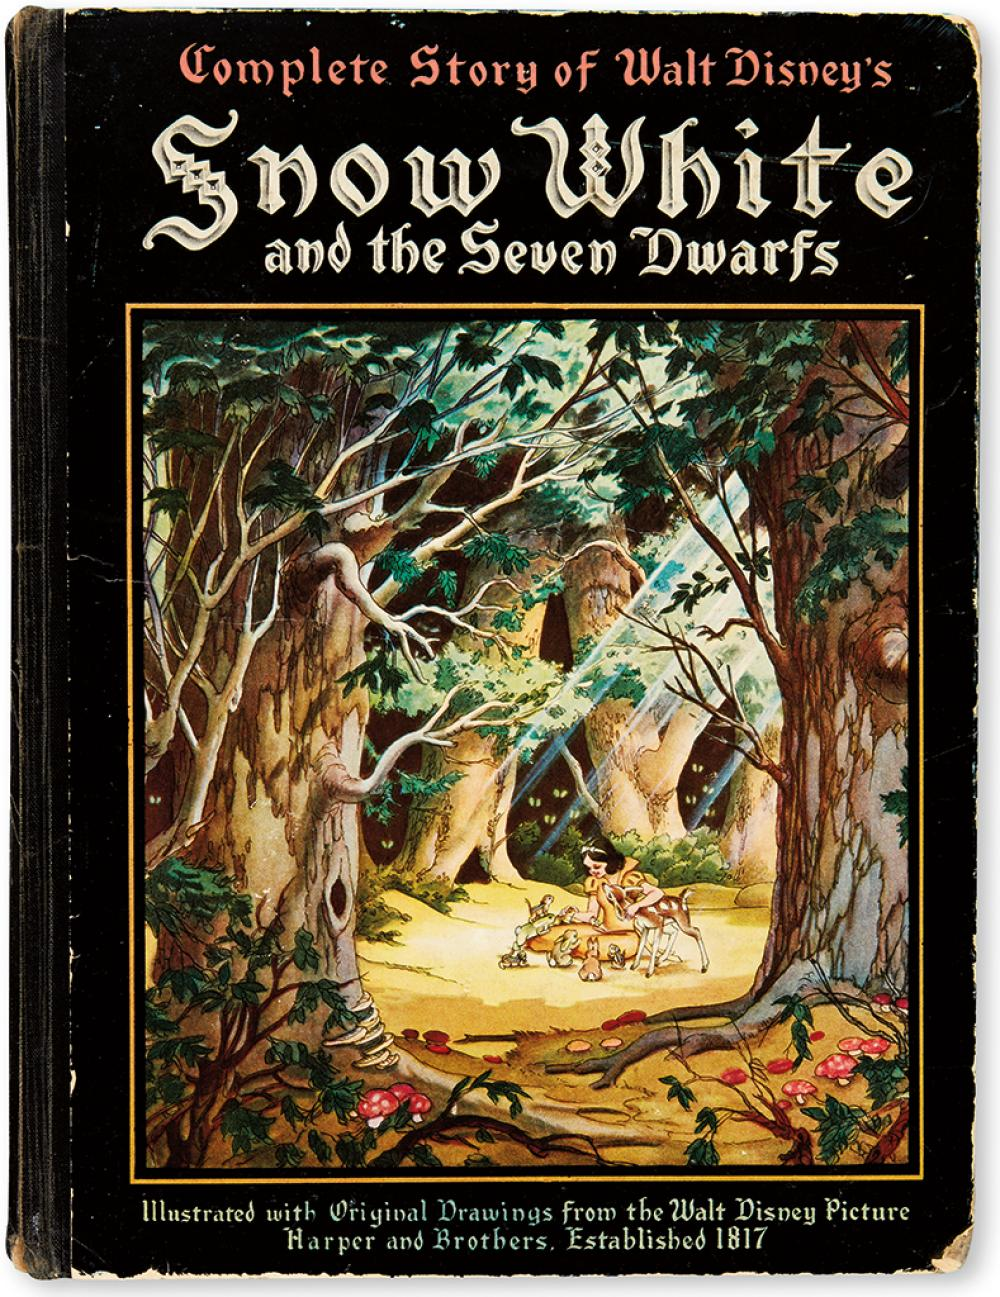 (CHILDREN'S LITERATURE.) [WALT DISNEY STUDIOS.] Walt Disney's Snow White and the Seven Dwarfs. Adapted from Grimm's Fairy Tales.